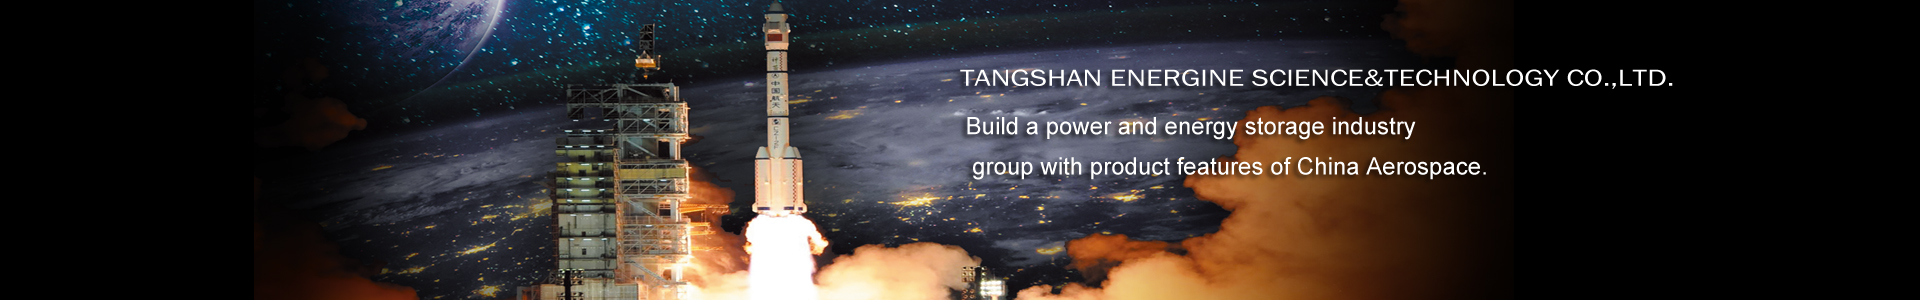 Build a power and energy storage industry group with product features of China Aerospace.